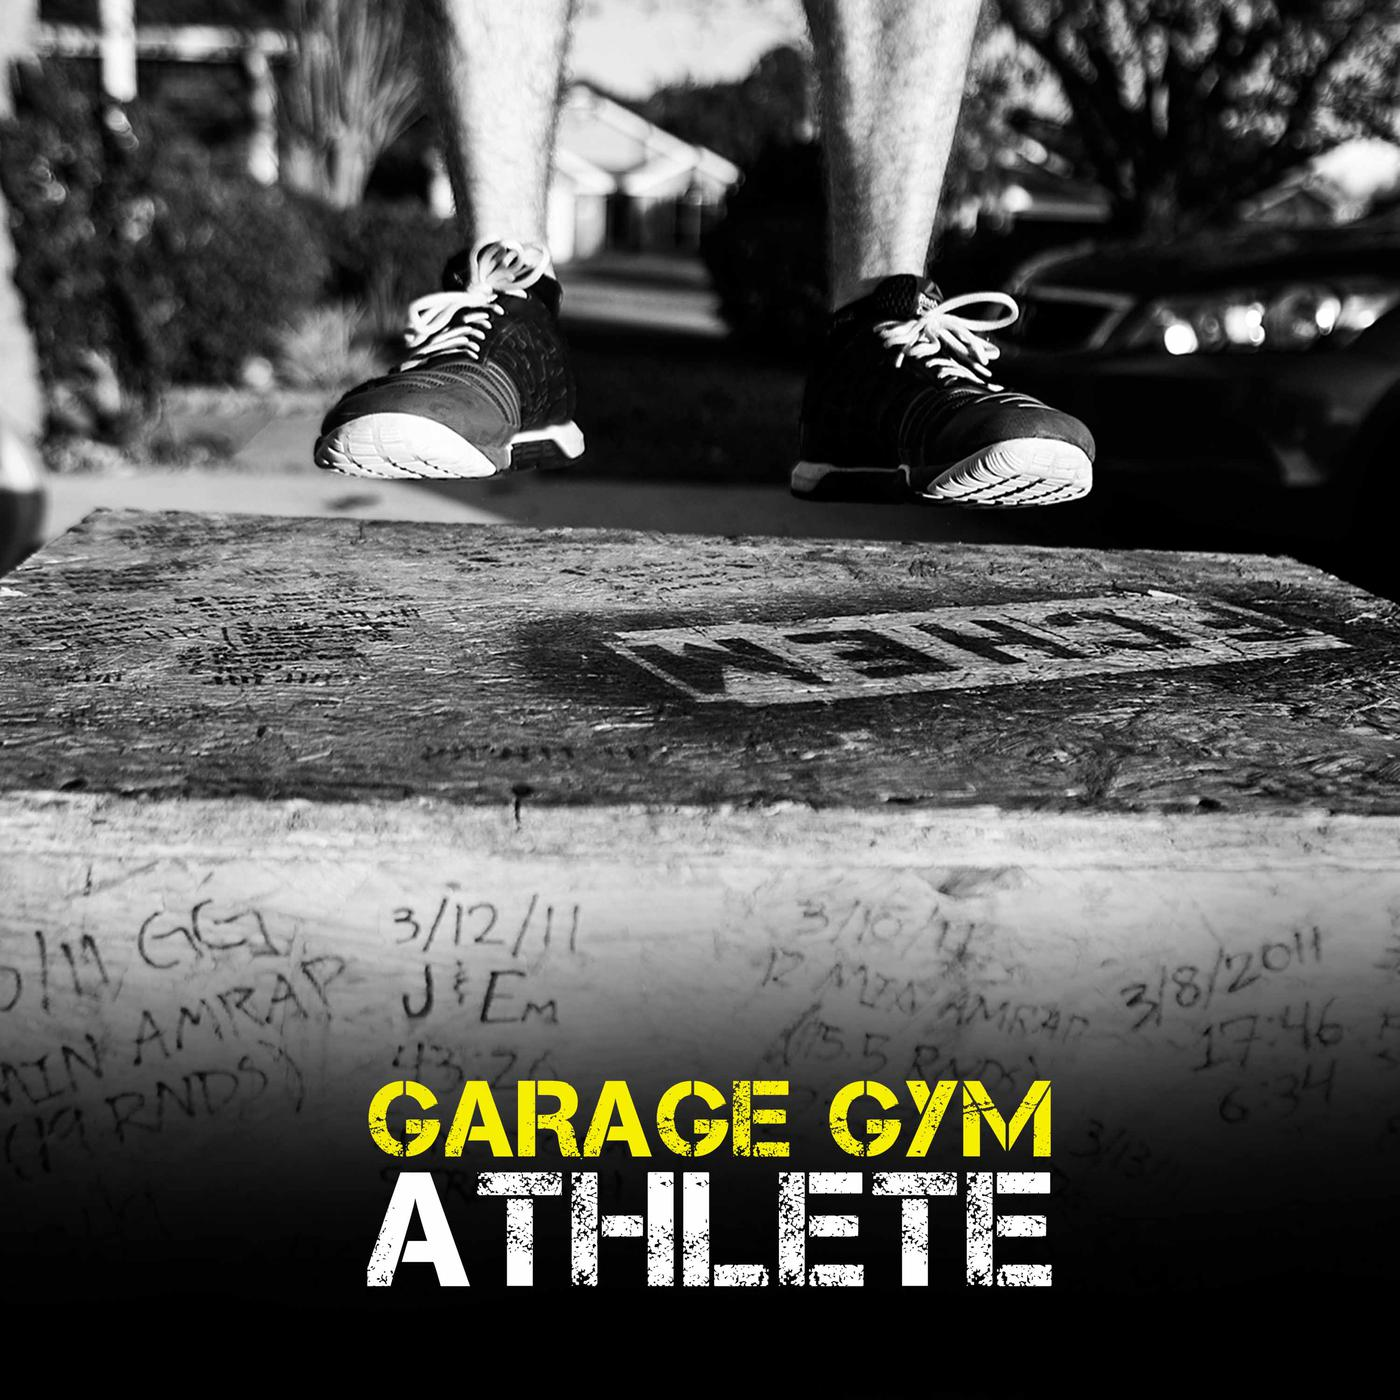 Build a garage gym how much does it cost to build a crossfit